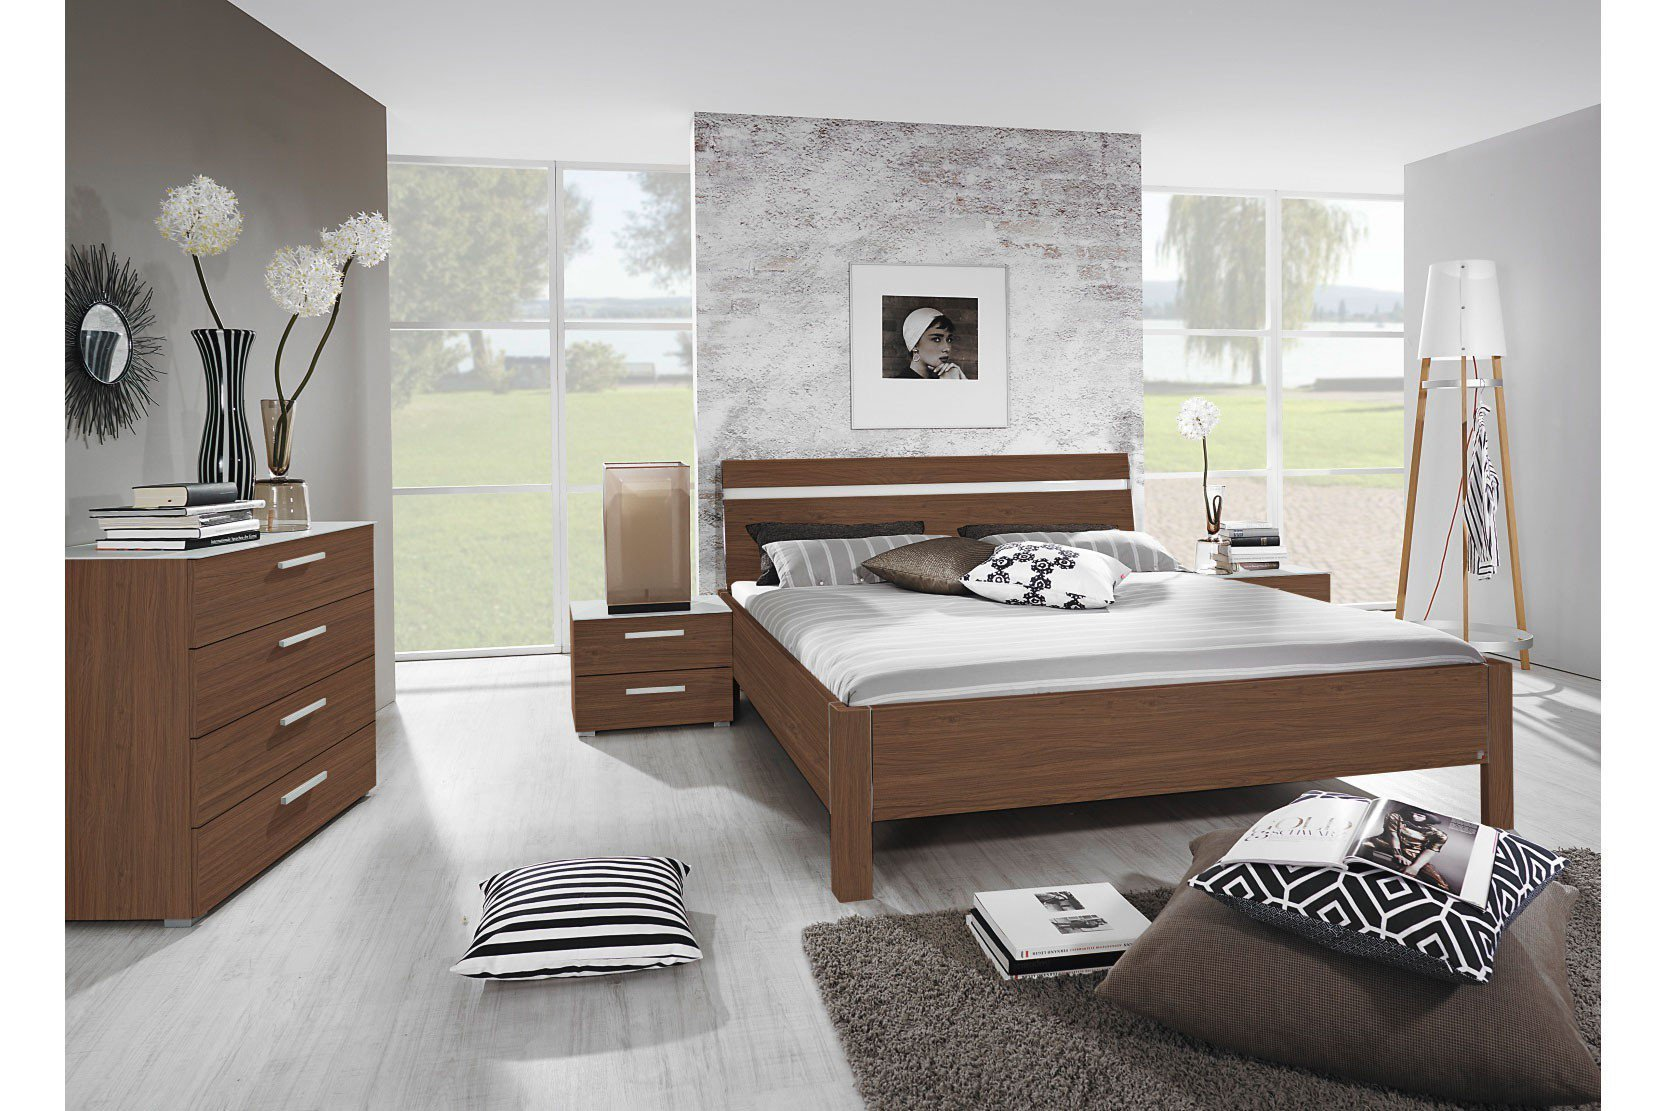 rauch dialog bett nussbaum 160 x 200 cm m bel letz ihr. Black Bedroom Furniture Sets. Home Design Ideas